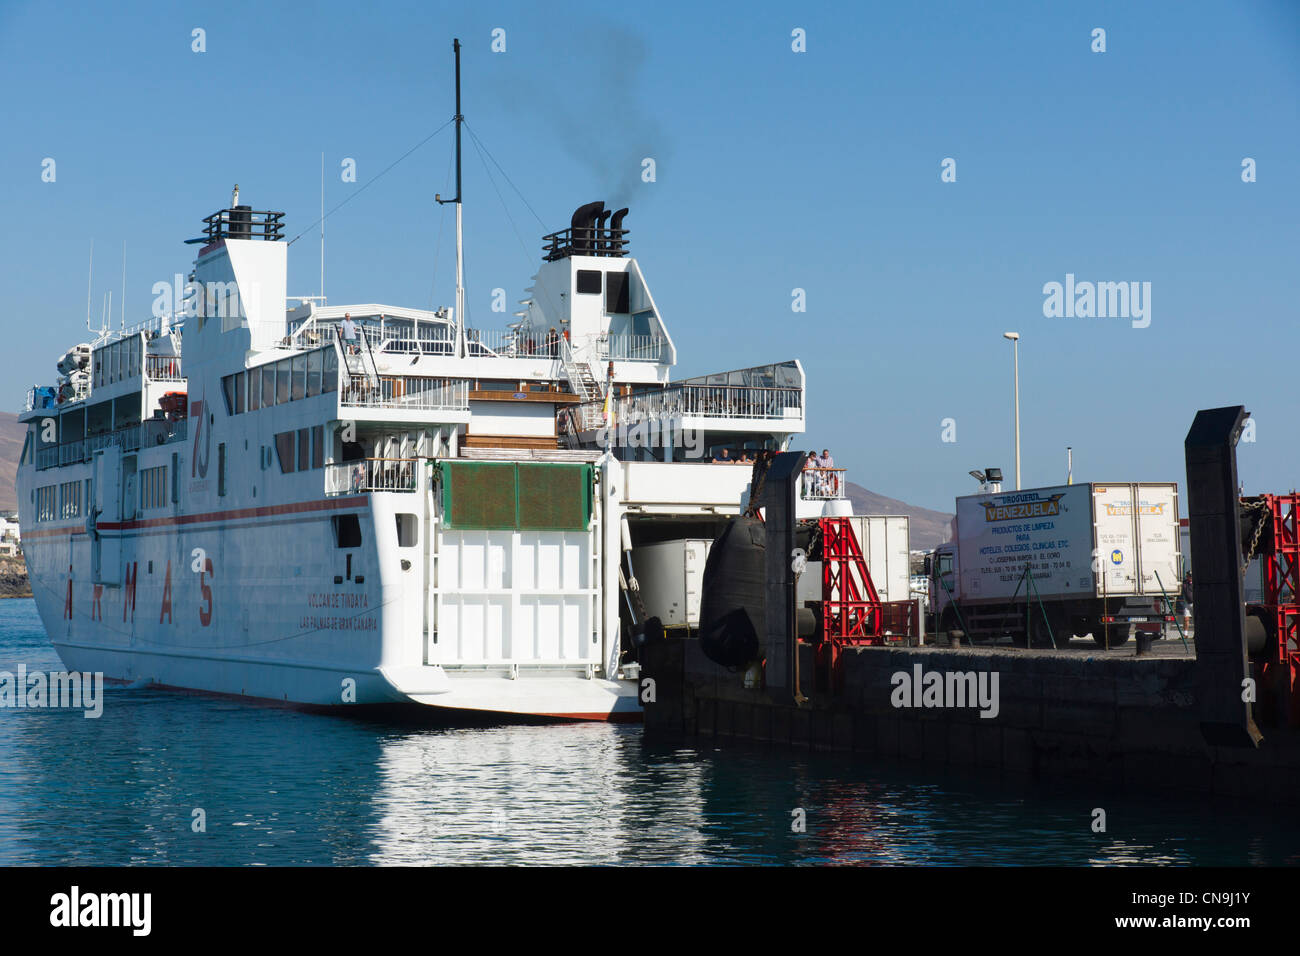 Lanzarote, Canary Islands - Playa Blanca. Commercial ARMAS line ferry to other Canary islands. - Stock Image